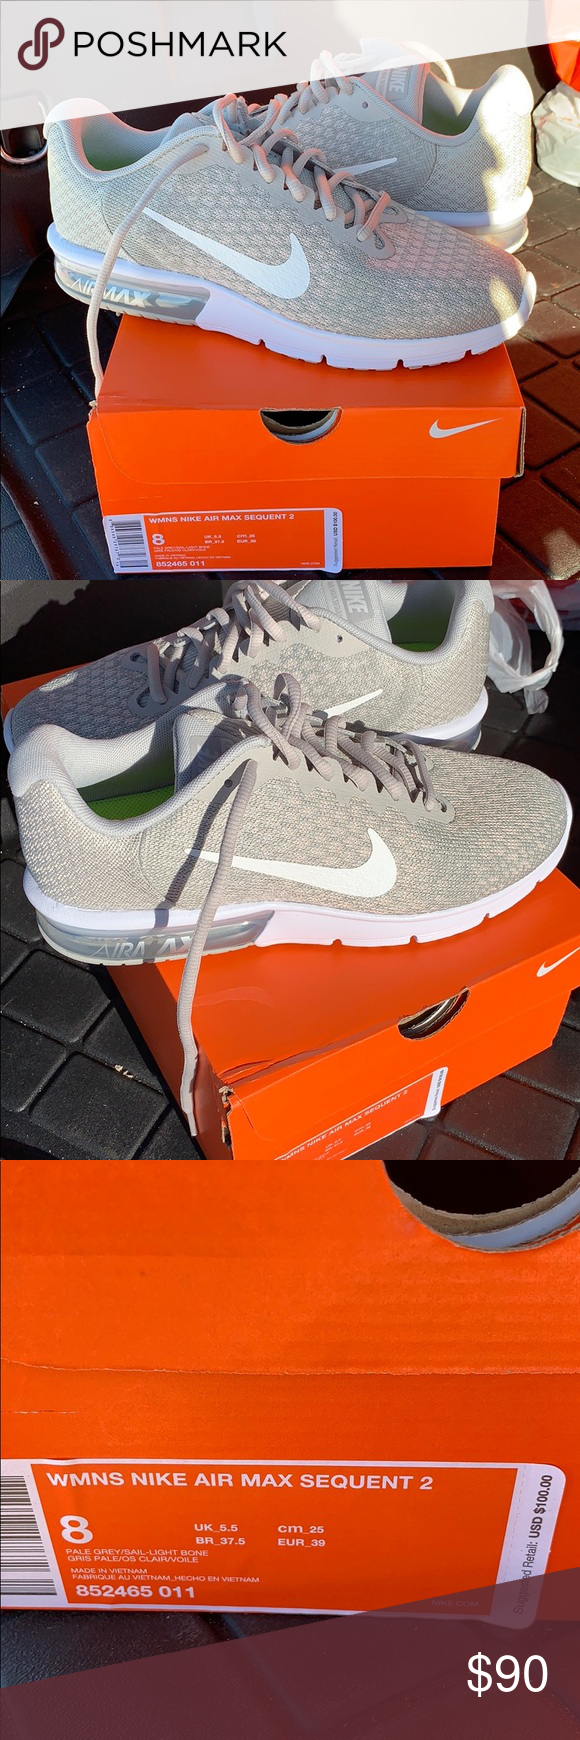 bc48f50b5 NWT Nike Air Max Sequent Size 8 NWT Nike AirMax Sequent 2. Size 8. Pale Grey /Sail-Light Bone Nike Shoes Athletic Shoes